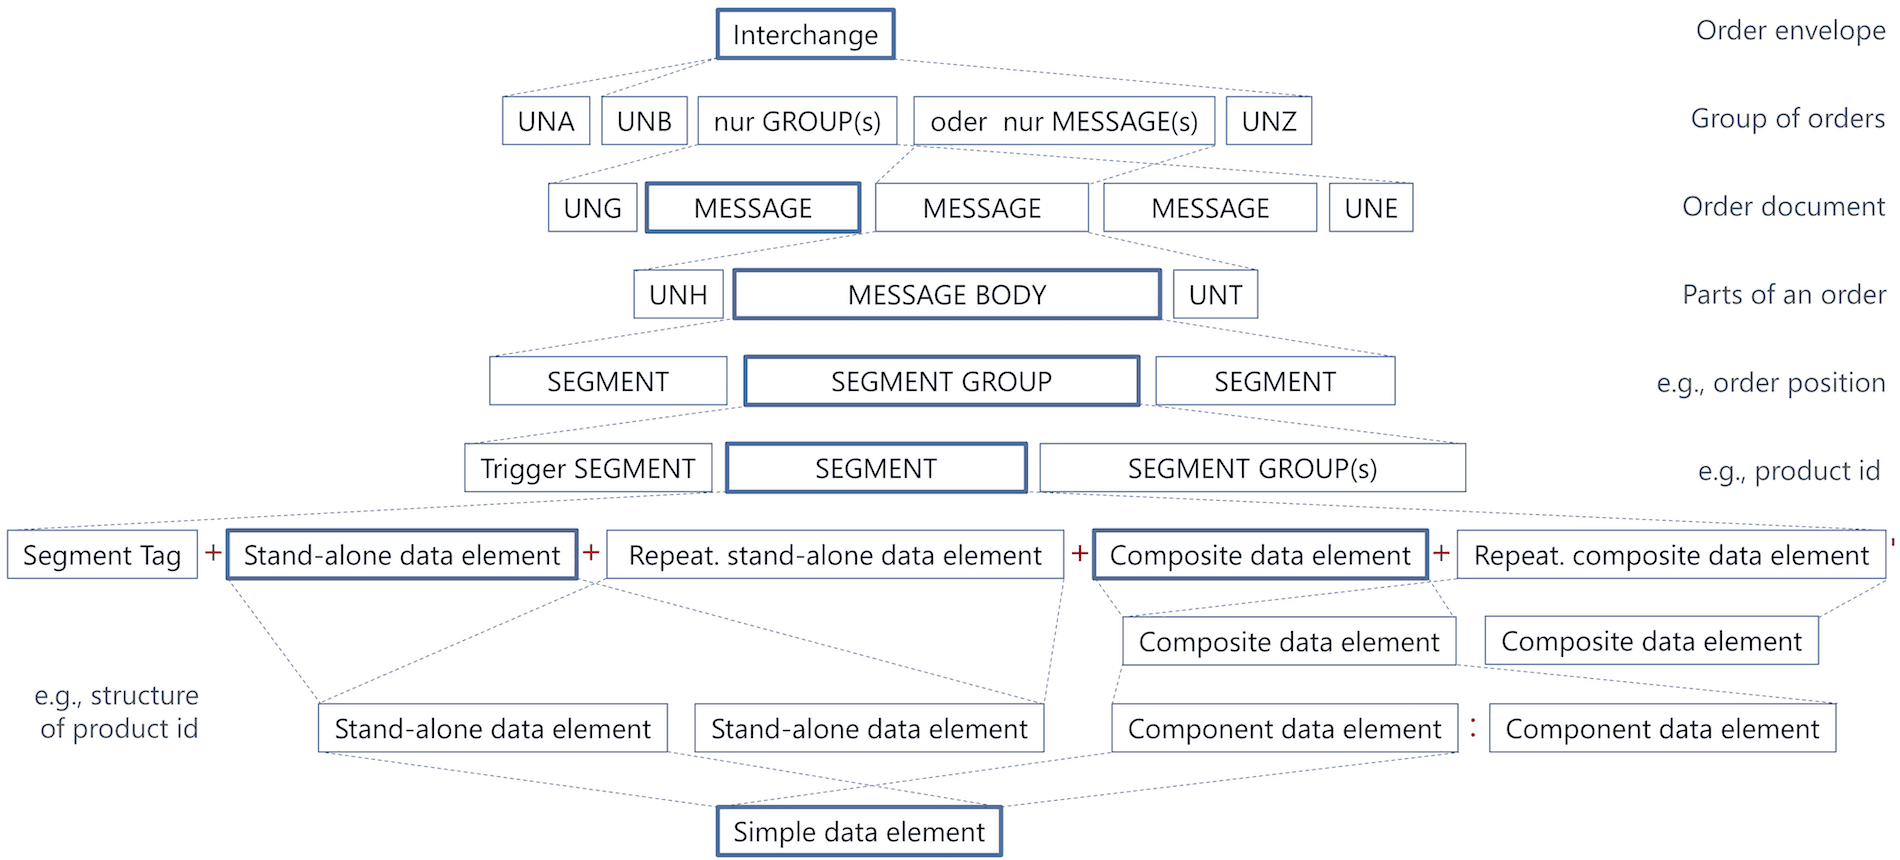 Structure of an EDIFACT file